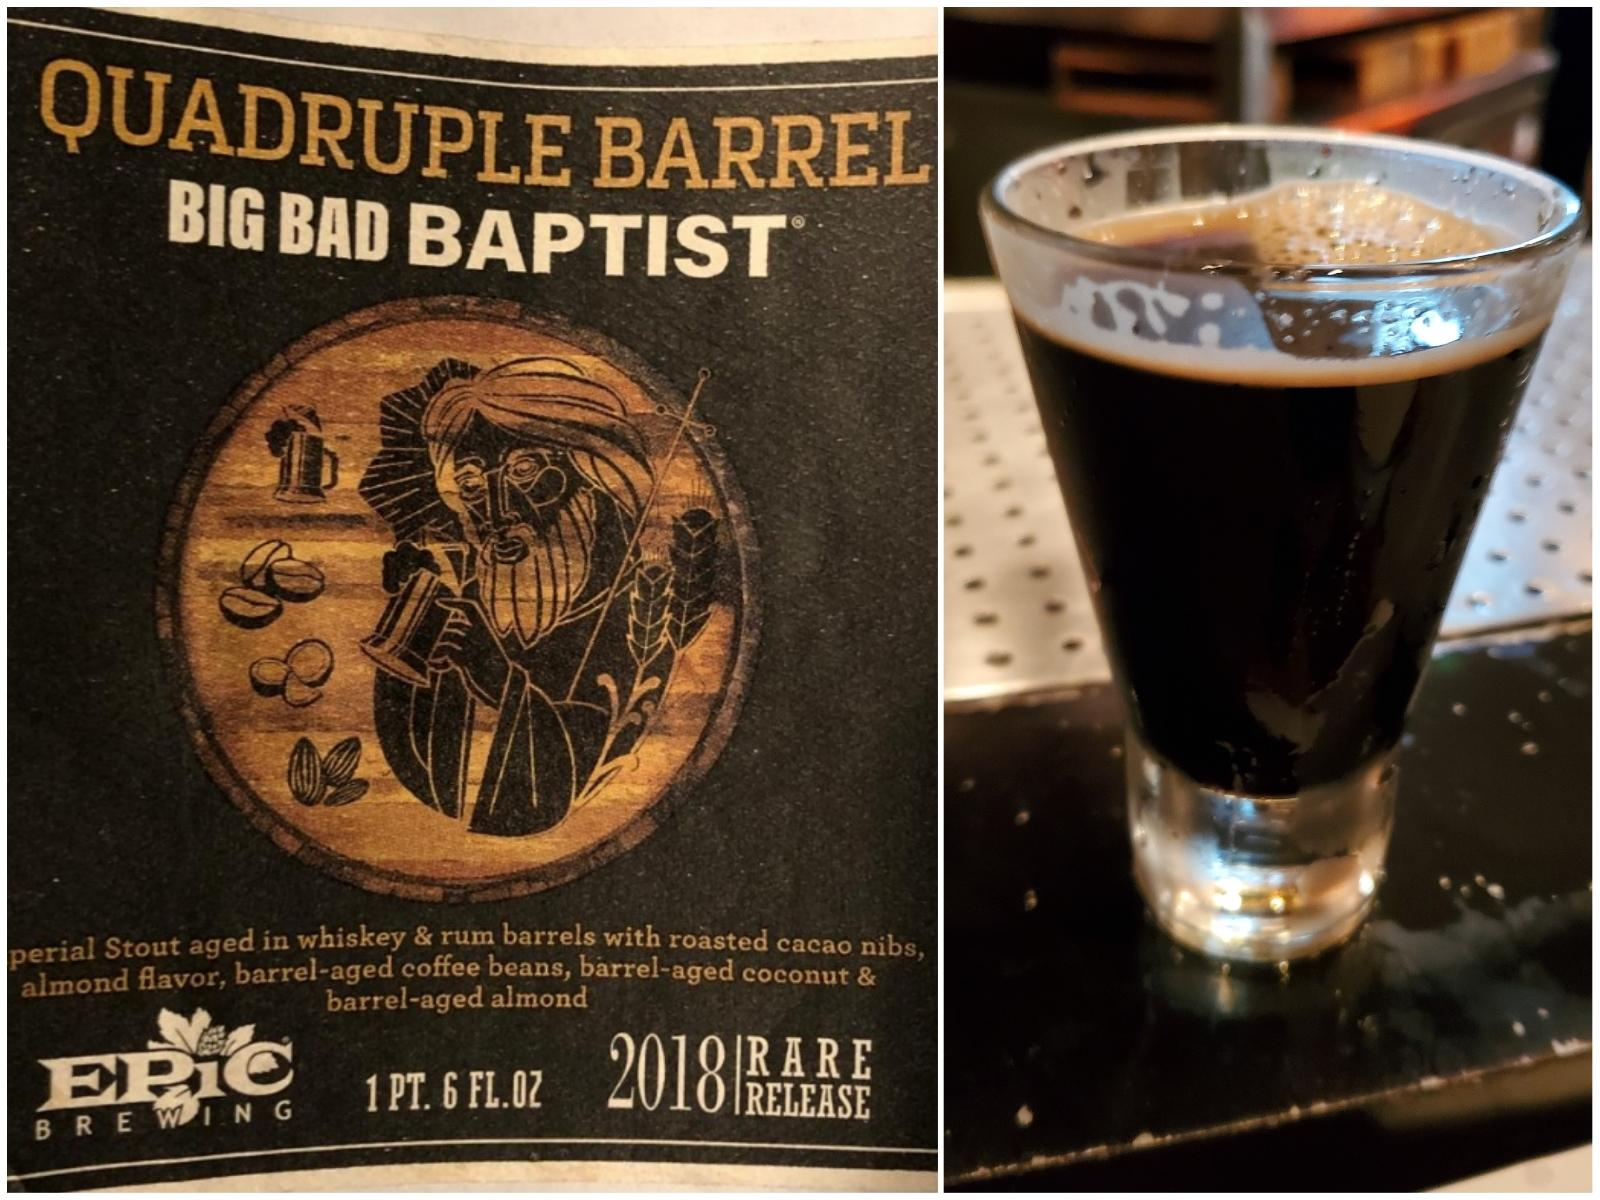 Big Bad Baptist (Quadruple Barrel)